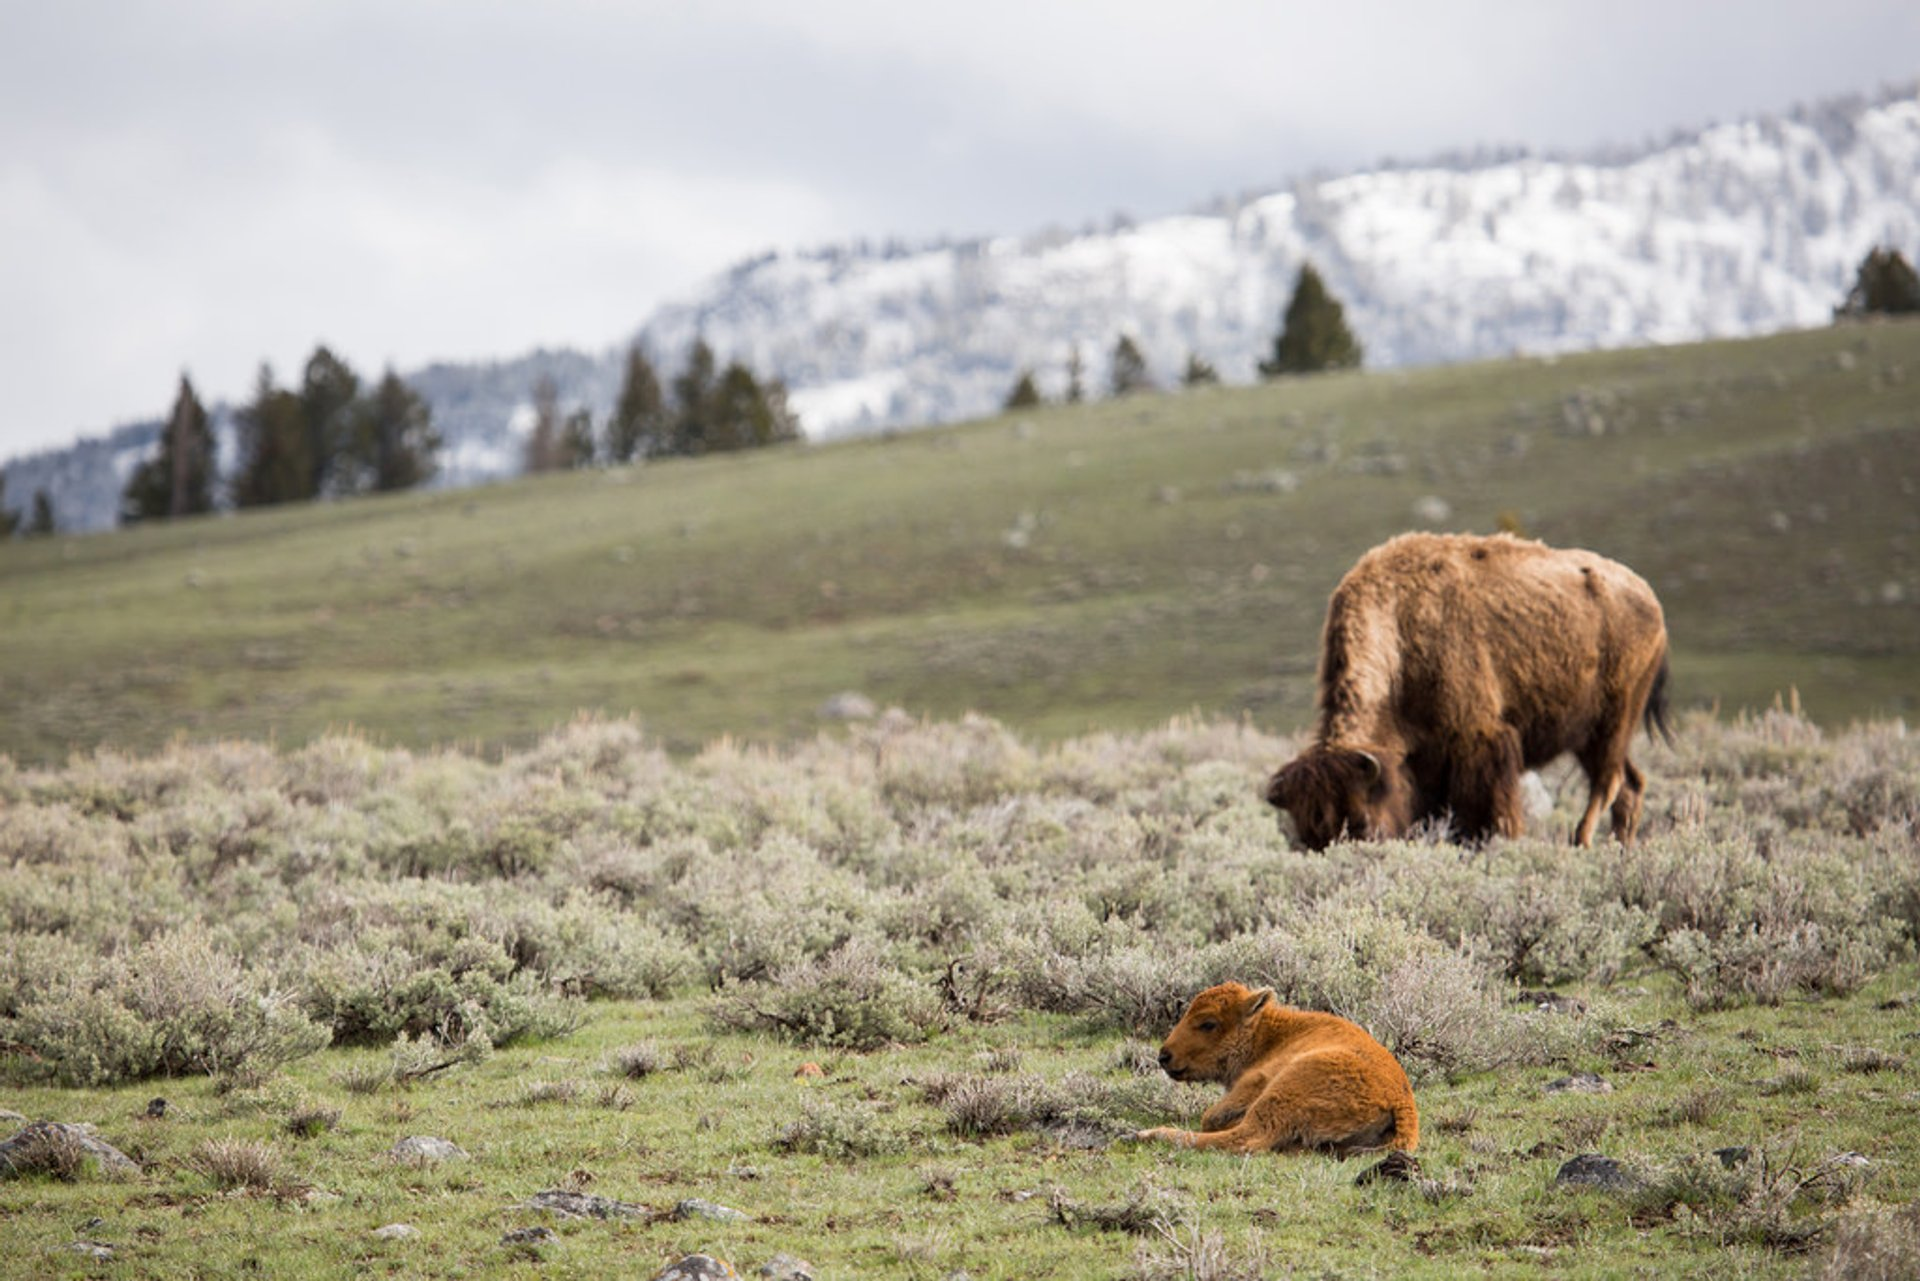 Best time to see Bison Mating Season in Yellowstone National Park 2020